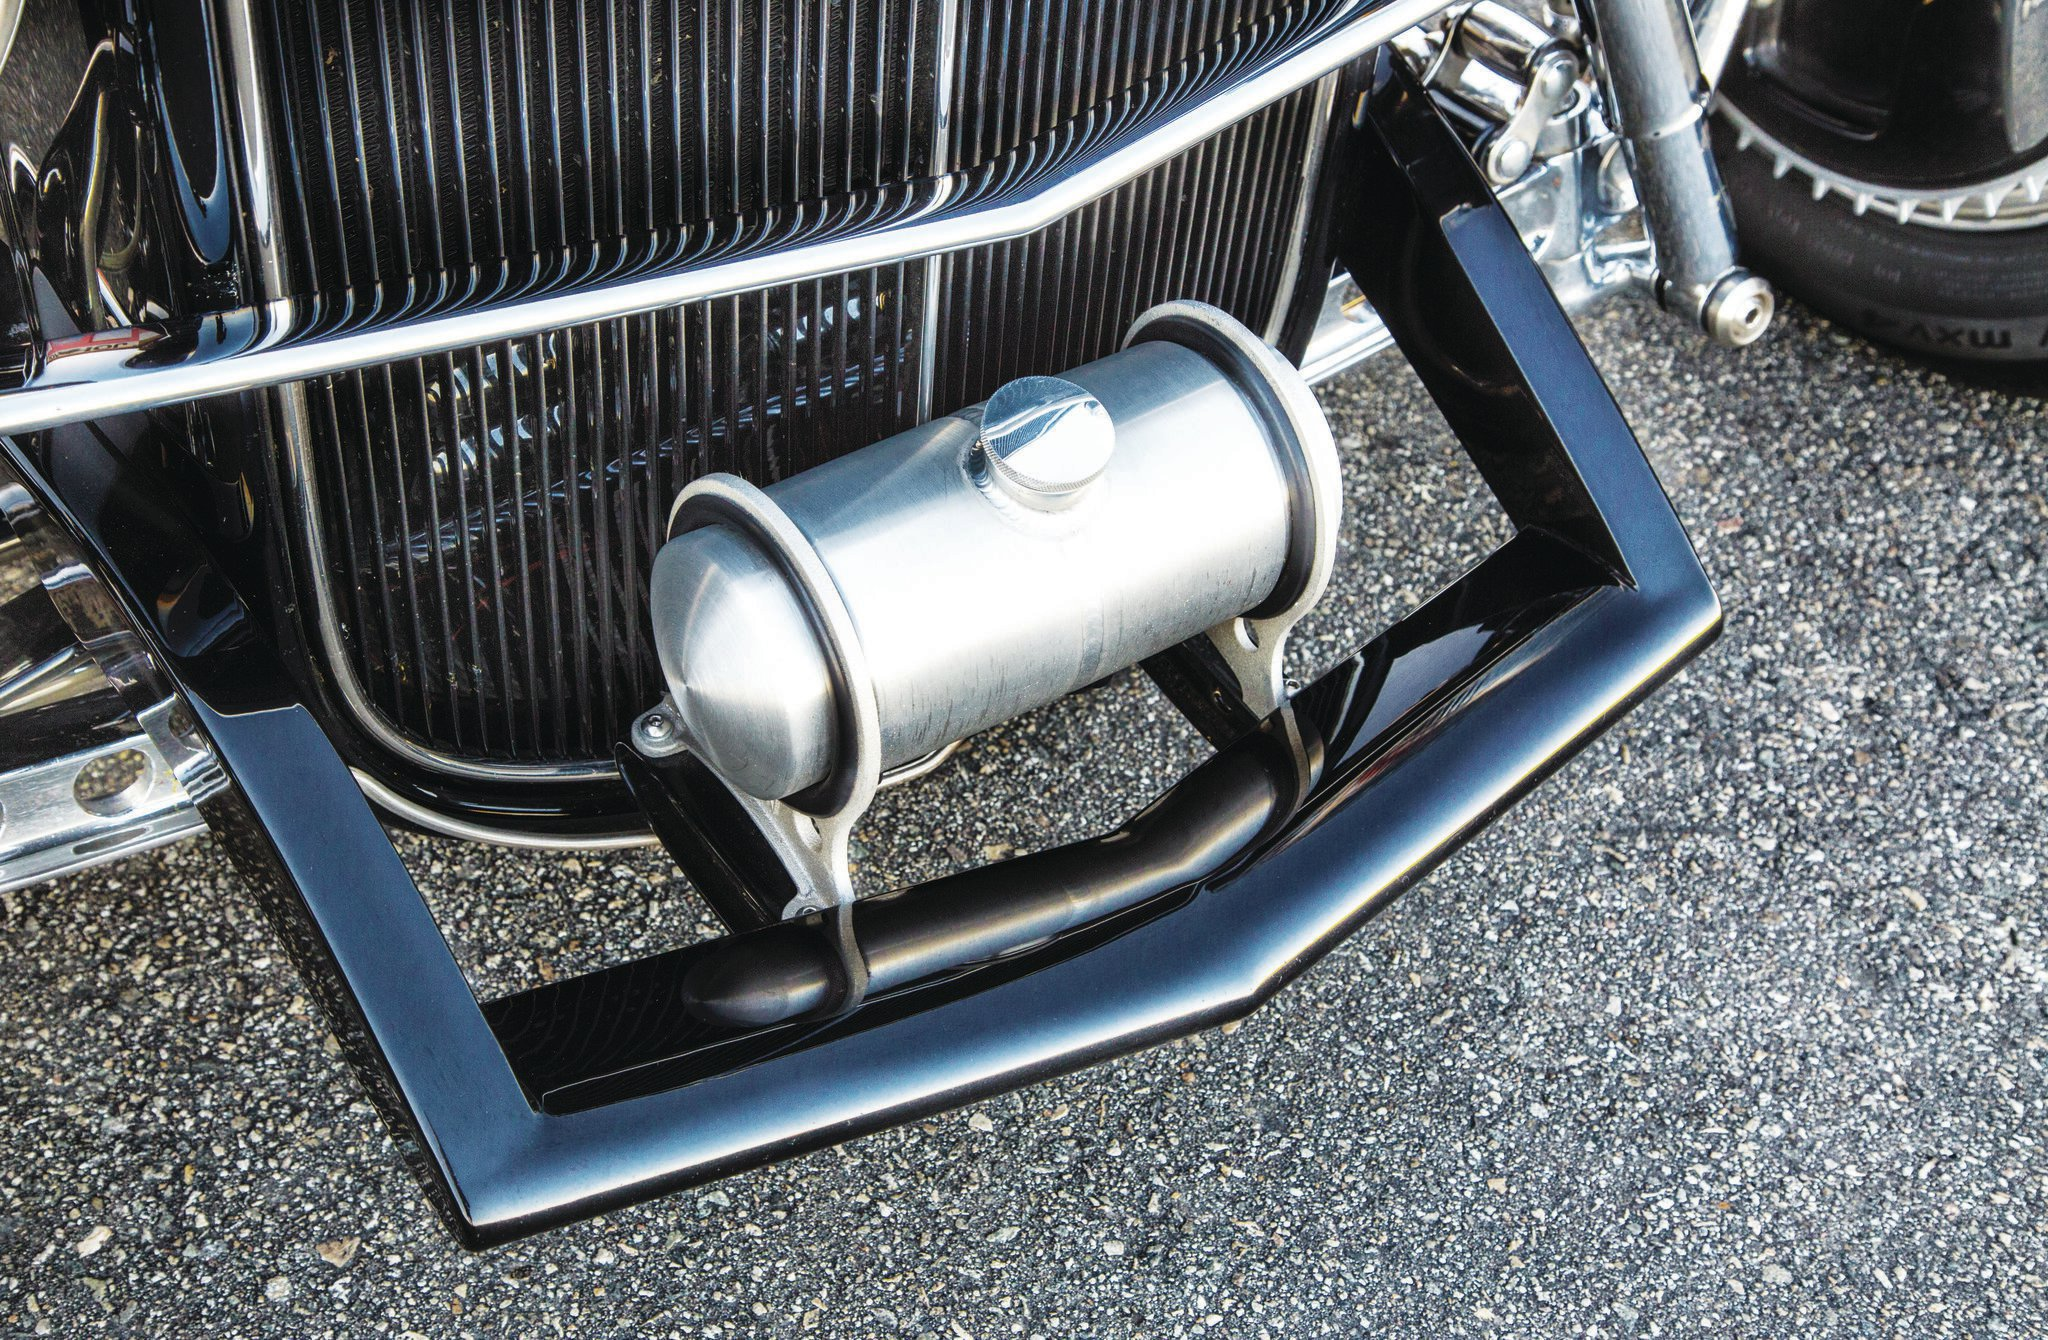 Moon made up this small version of its infamous Moon tank based on a Harley oil tank doing duty as a radiator overflow tank. The front cross tube has been molded into the shortened 1933–1934 frame horns. There are bugs in that grille!